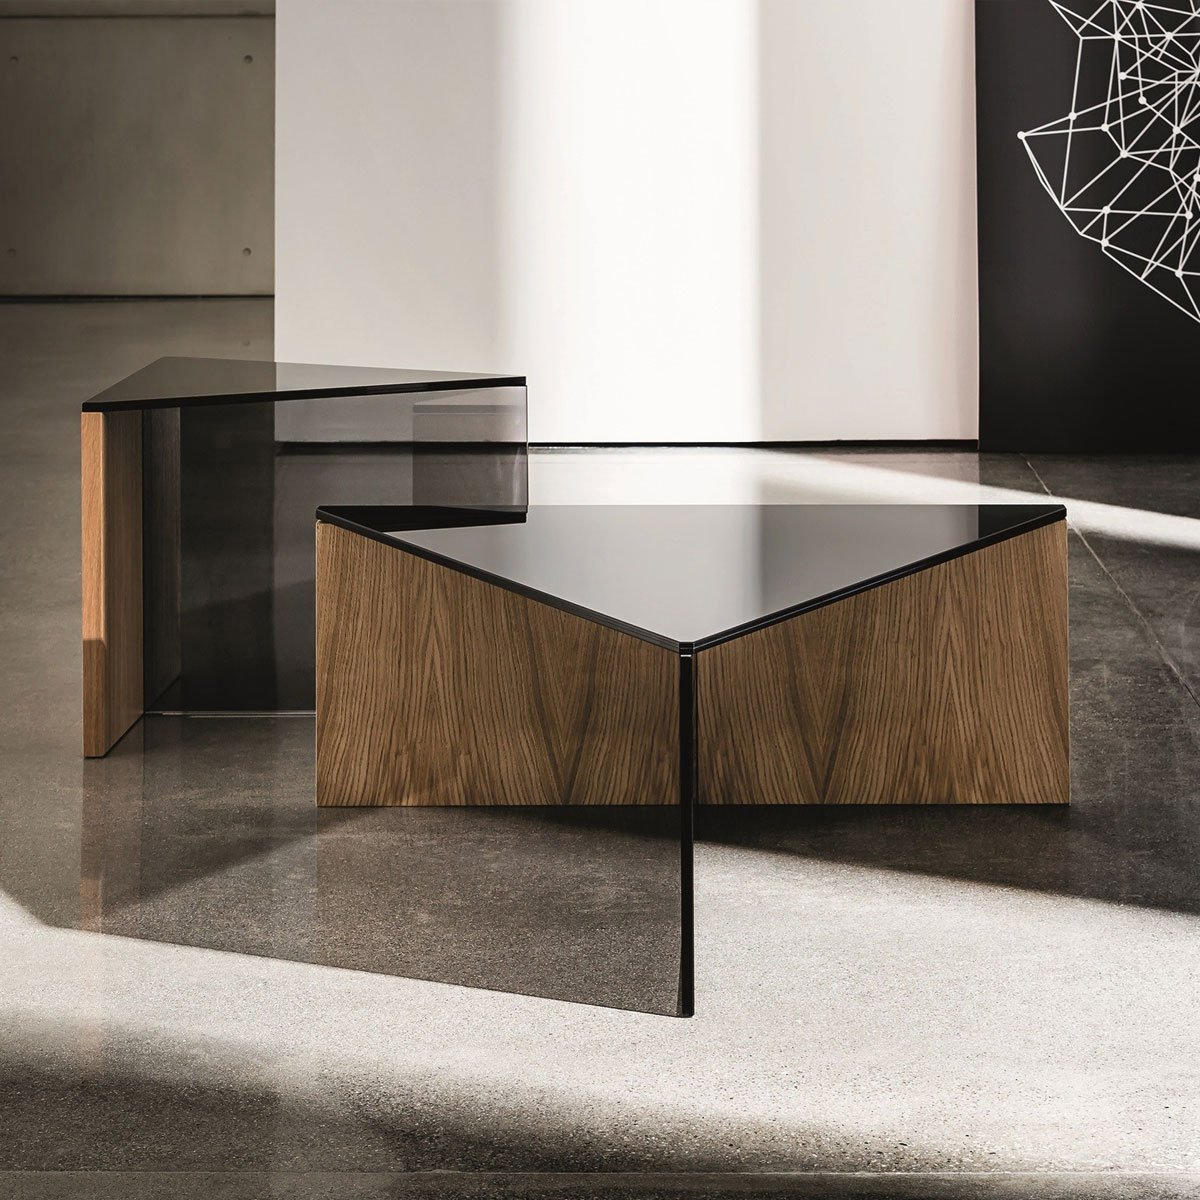 Metal Square Coffee Table With Glass Top And Triangular: Regolo Triangular Glass And Wood Coffee Table